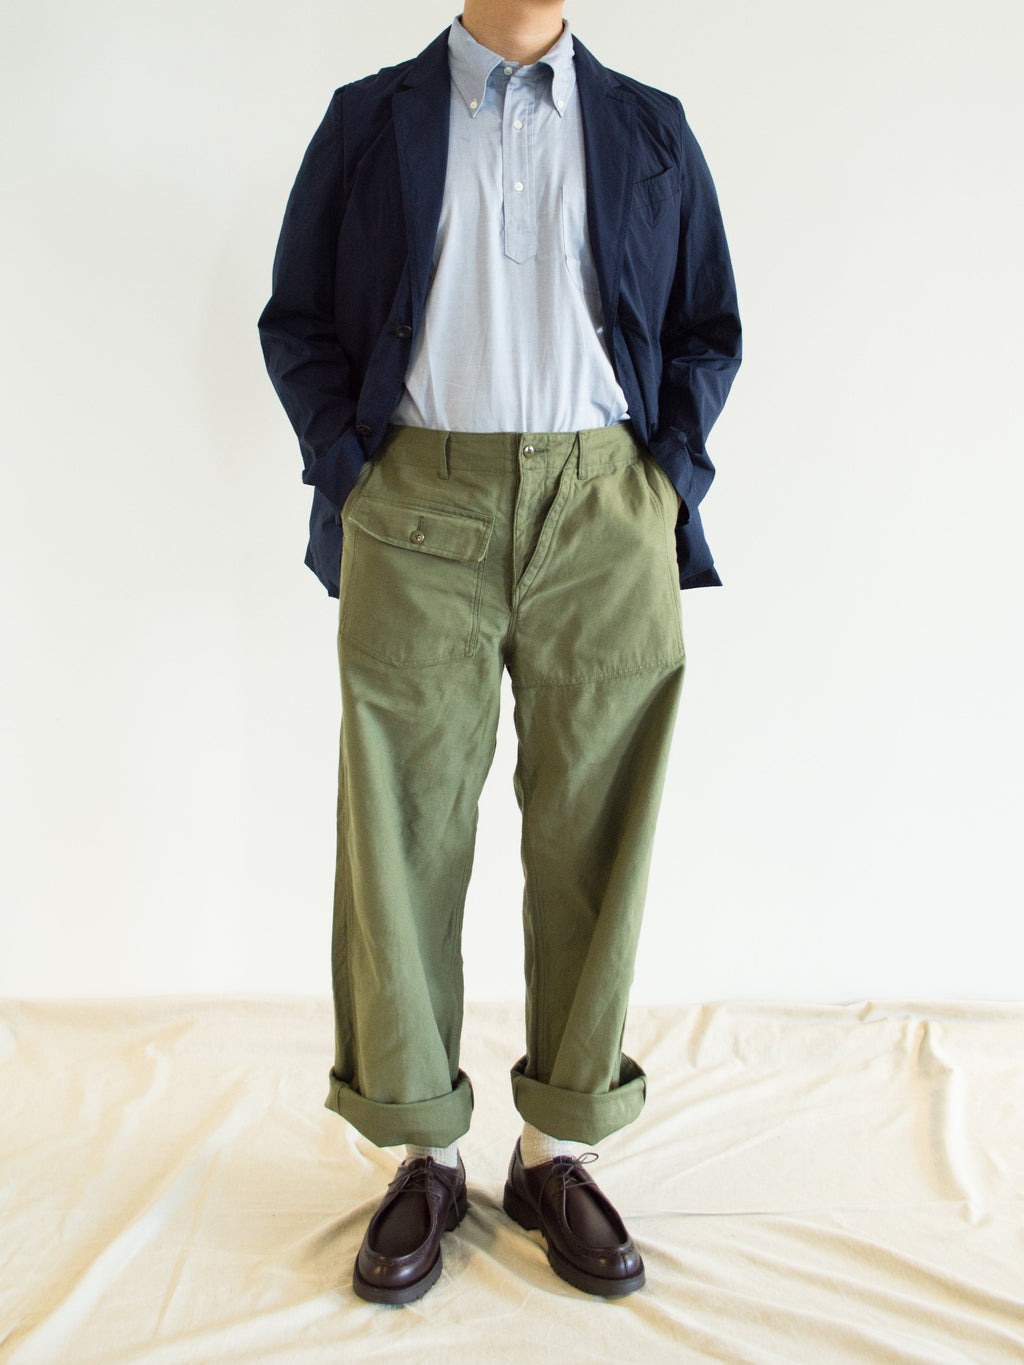 Namu Shop - Niche Twisted Fatigue Pants